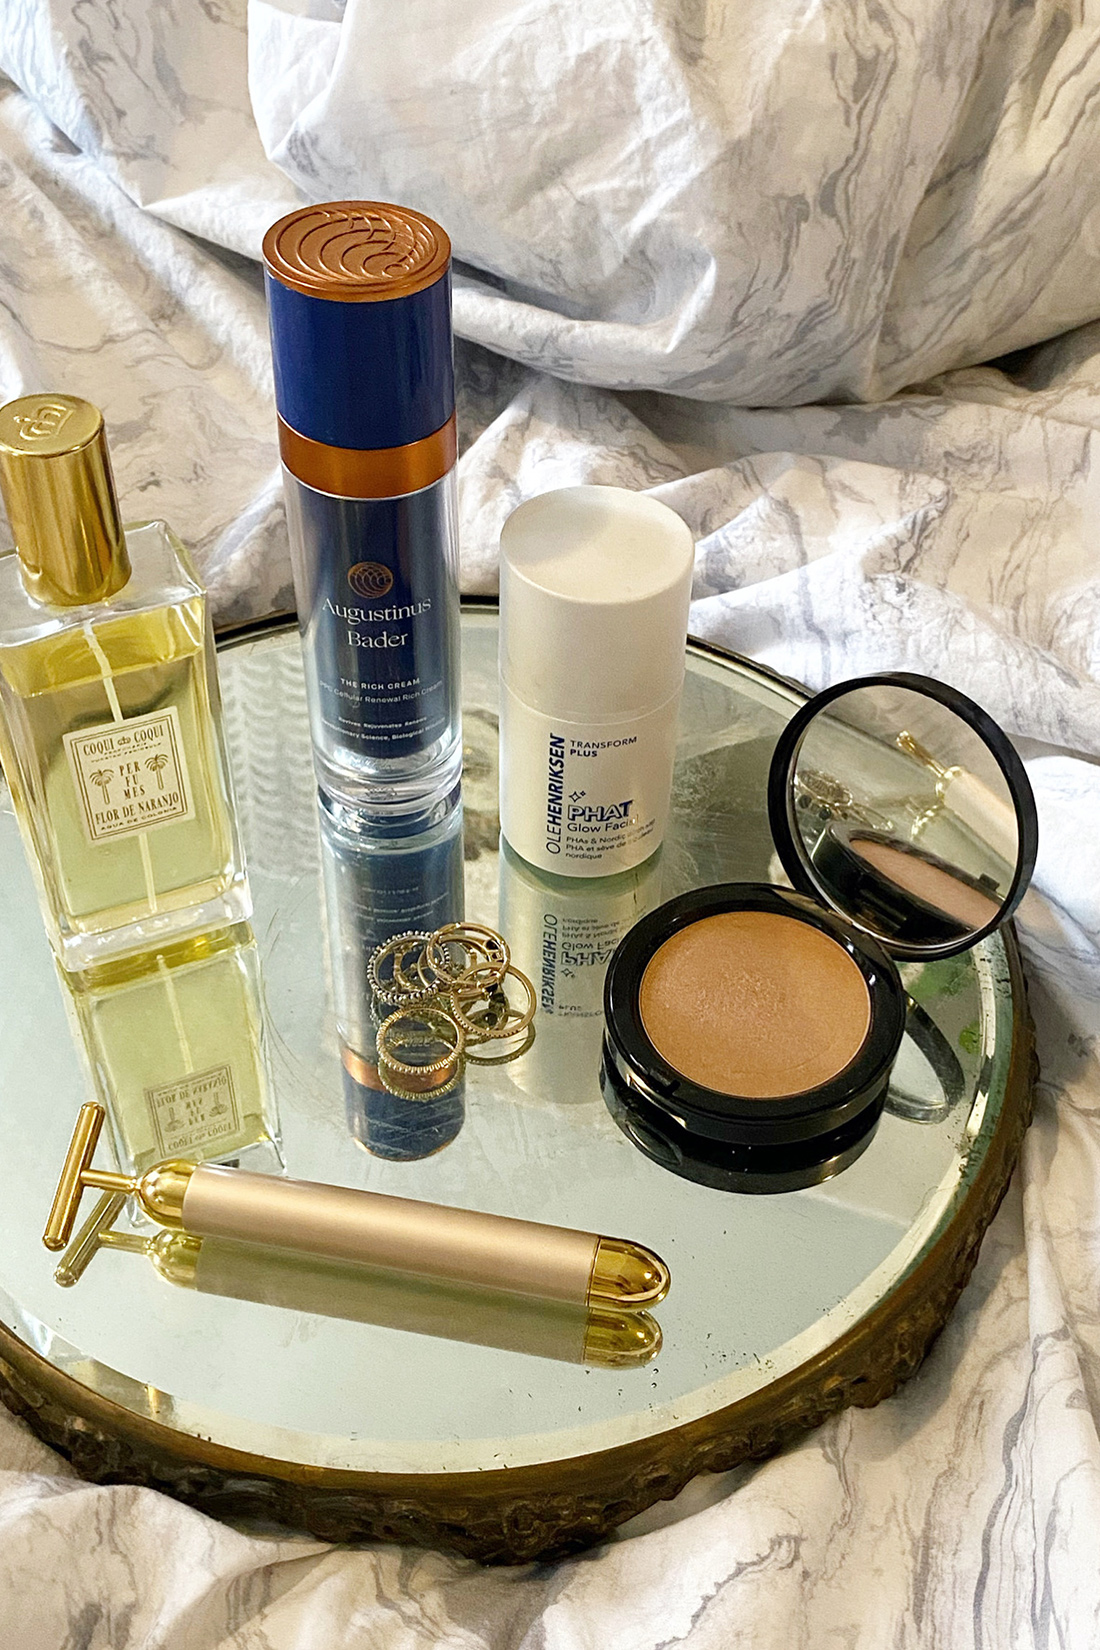 Some recent beauty favorites